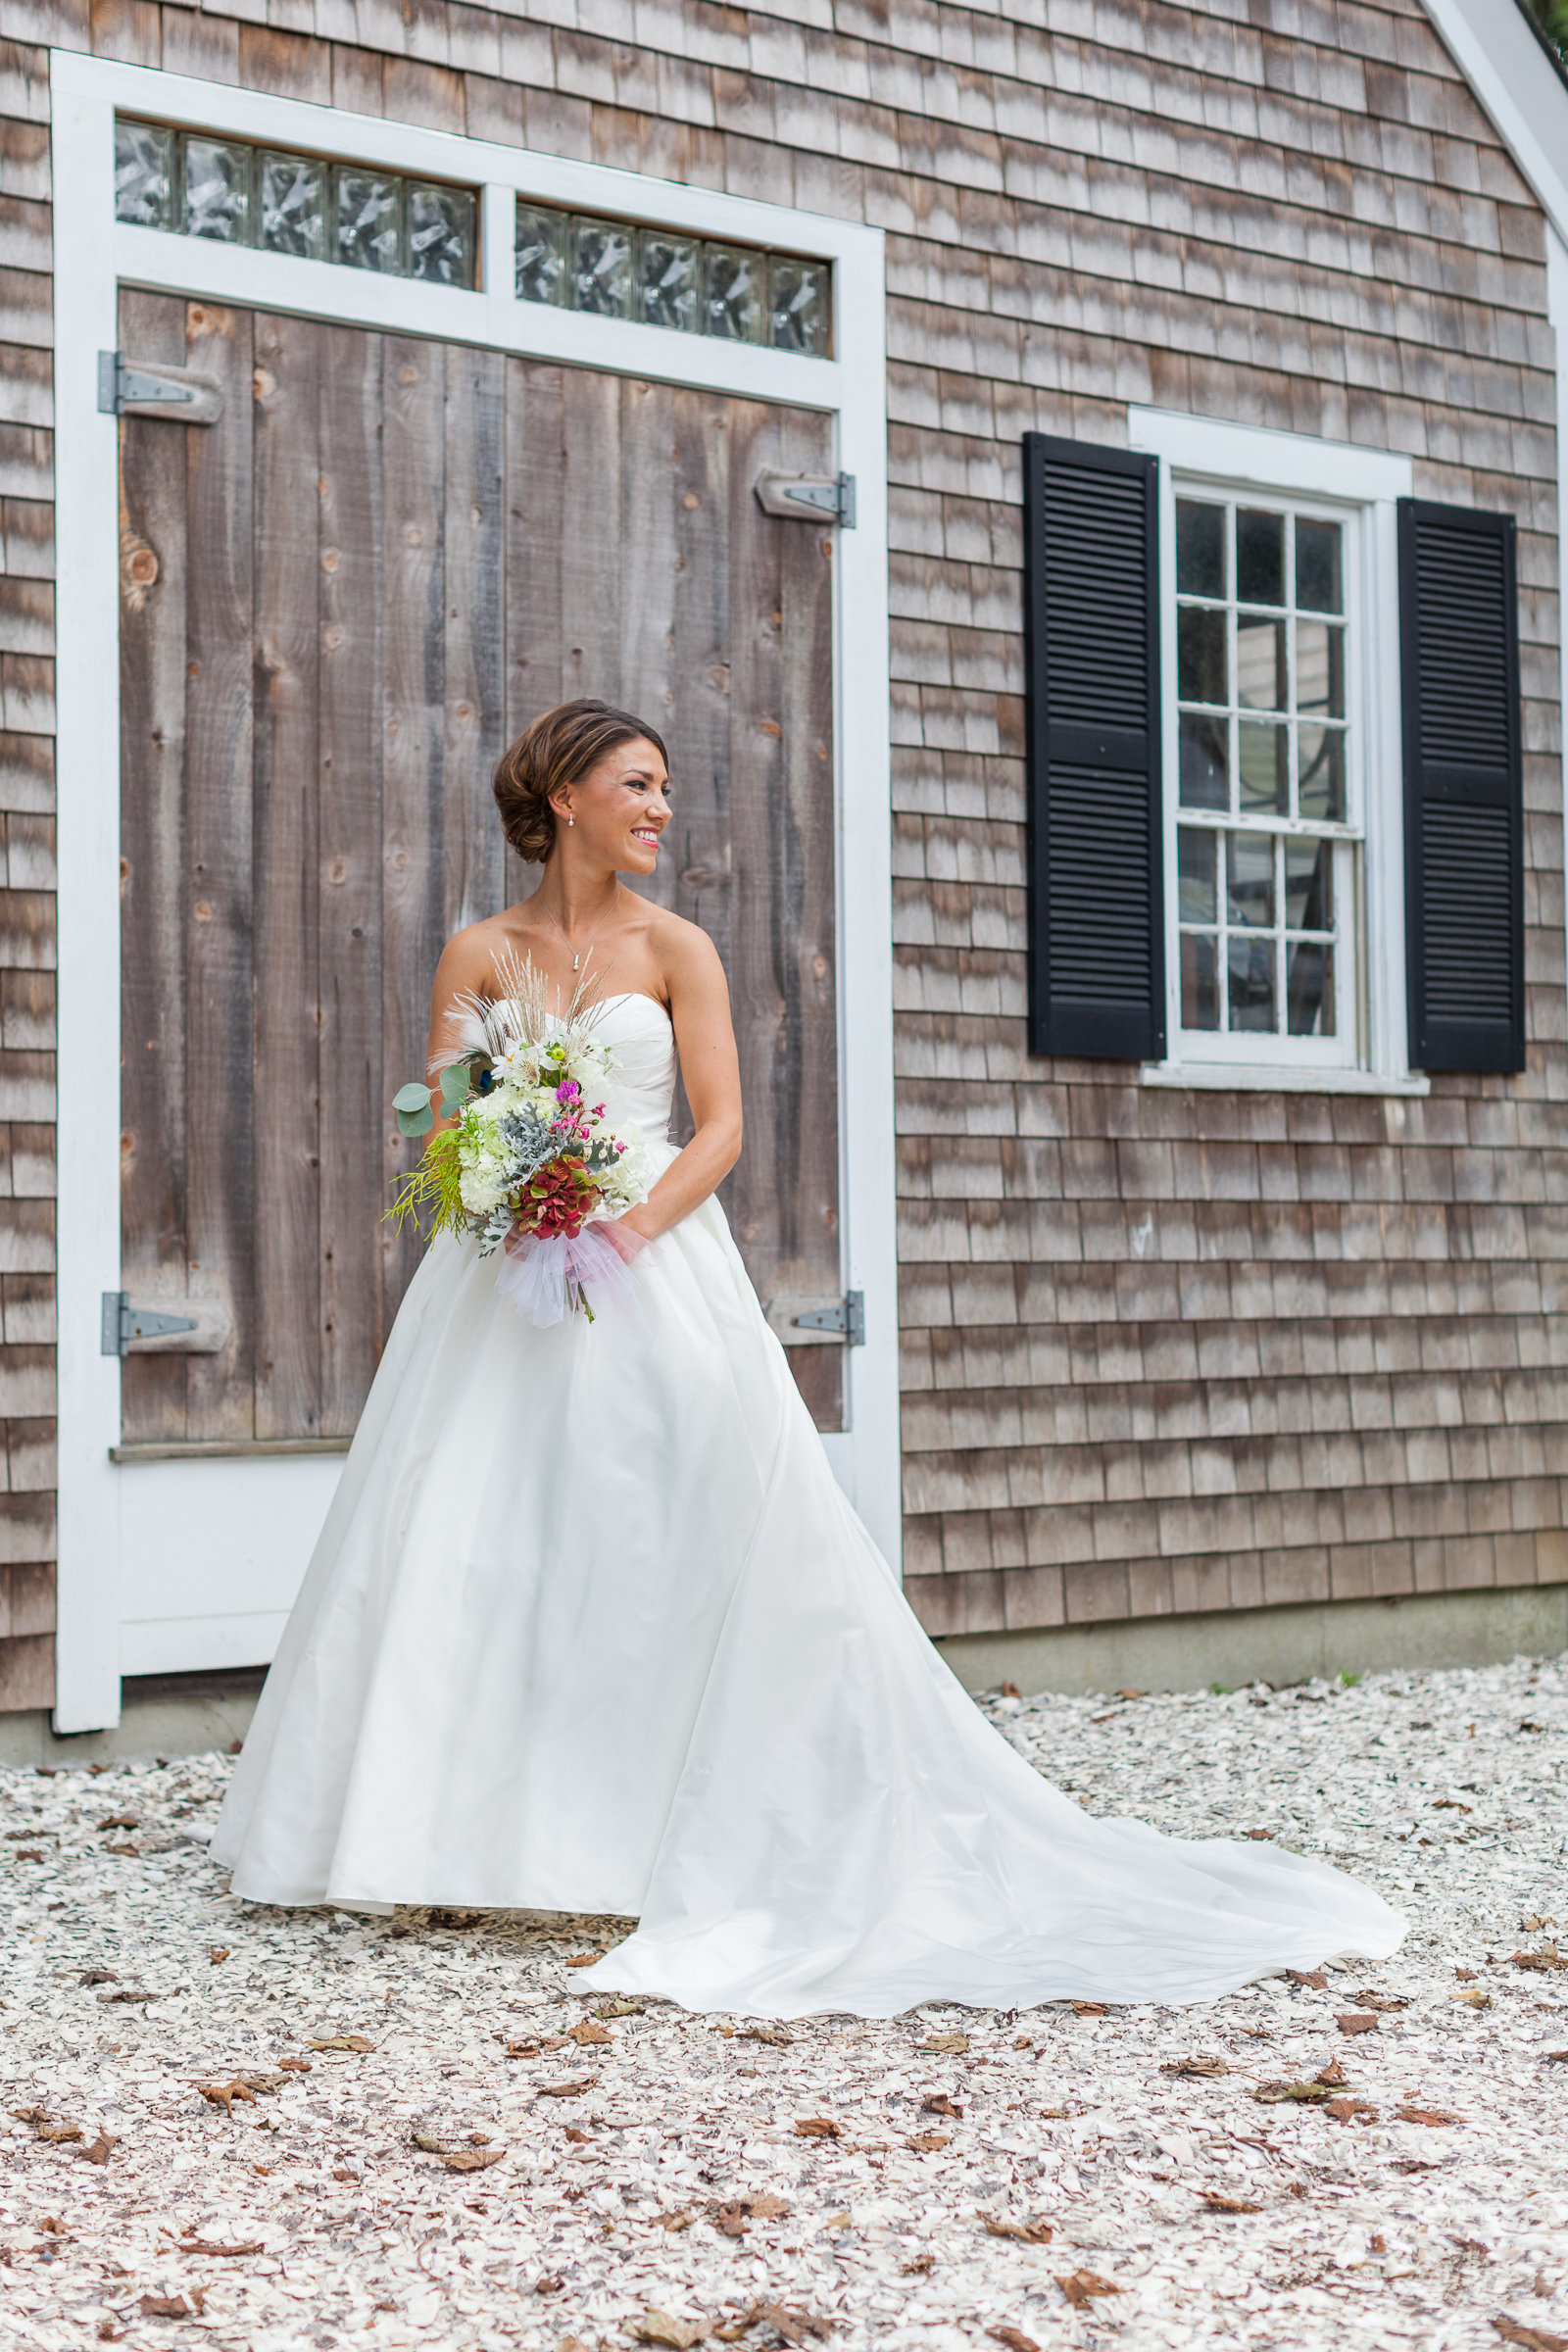 MKP_Preservation Hall Wellfleet ma_CapeCodPhotographer_MichelleKayePhotography_2015-3